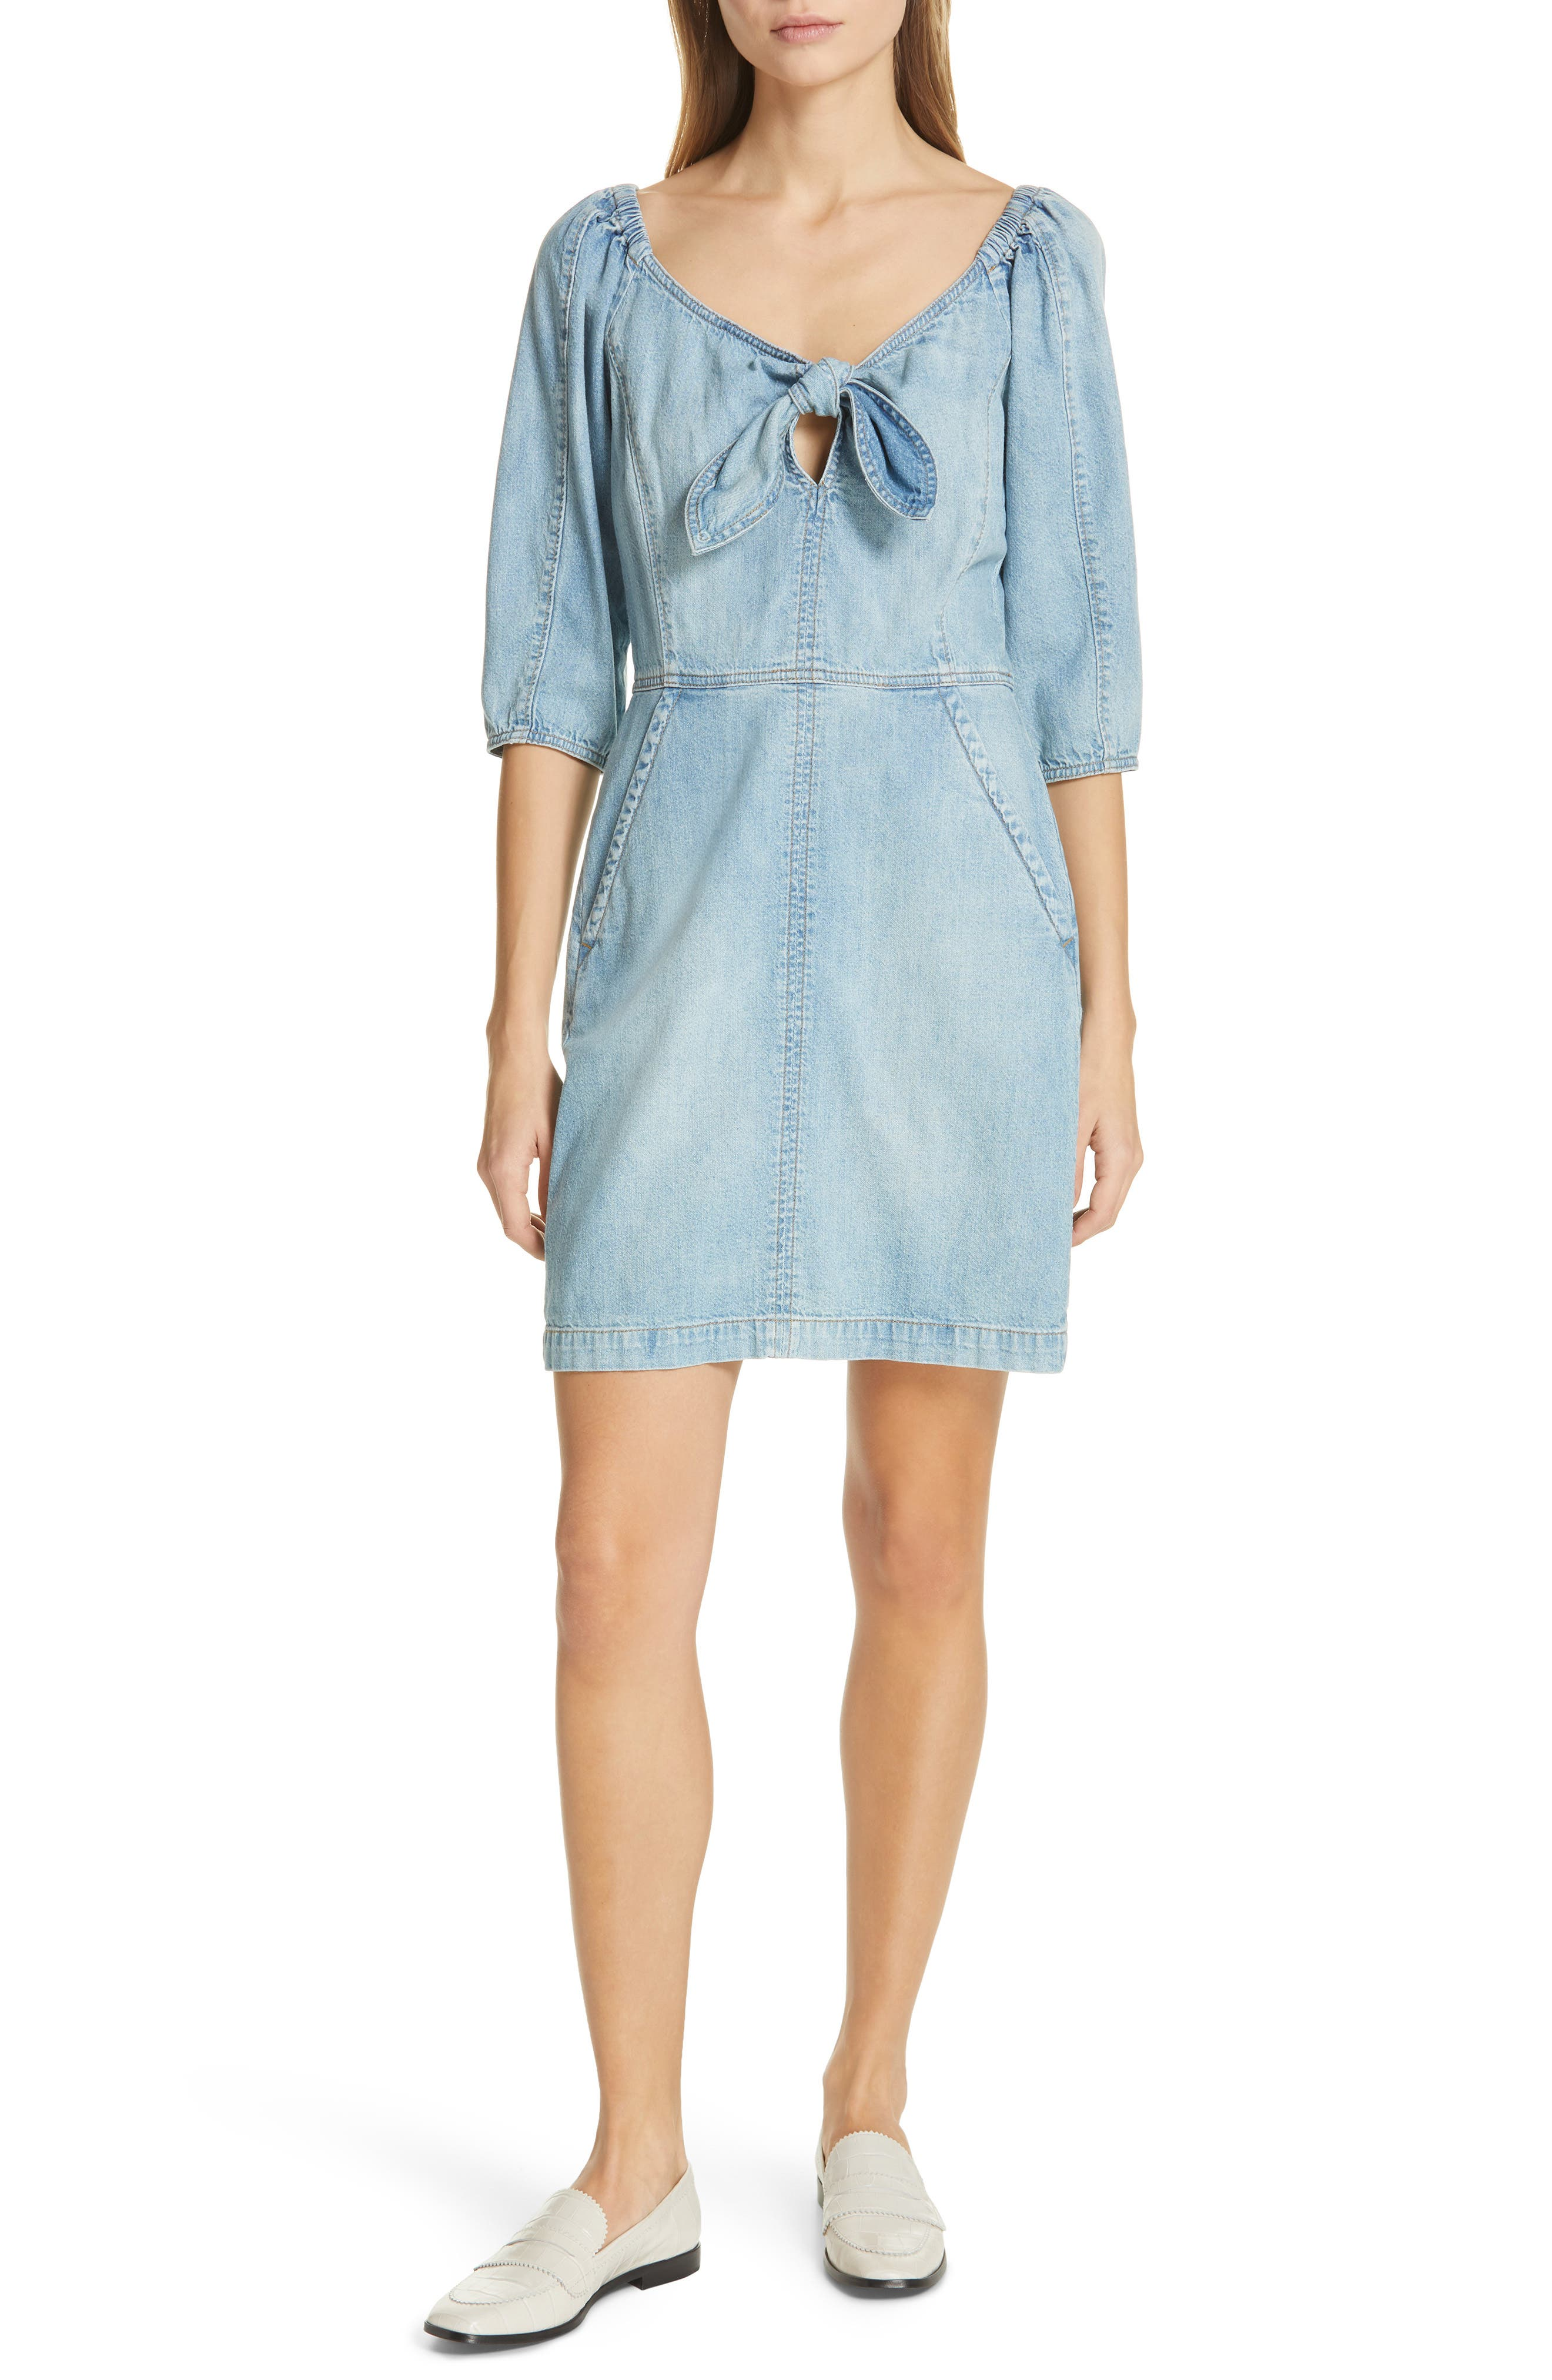 La Vie Rebecca Taylor Tie Neck Denim Dress, Blue